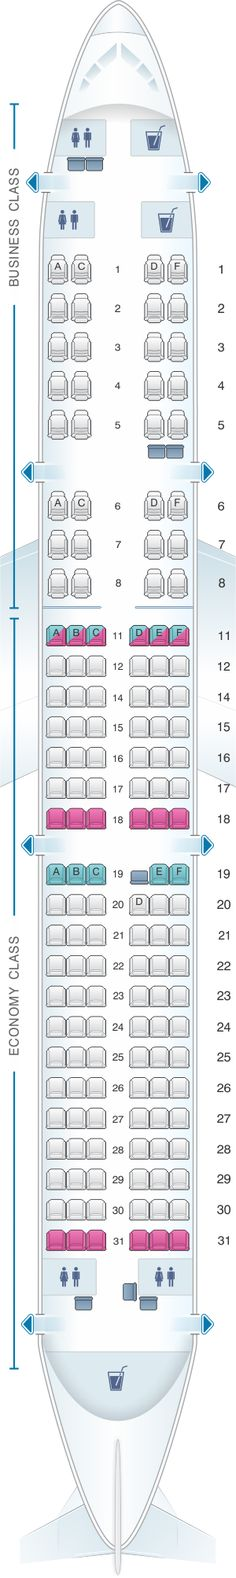 Seat Map Kingfisher Airlines Airbus A321 200 151PAX